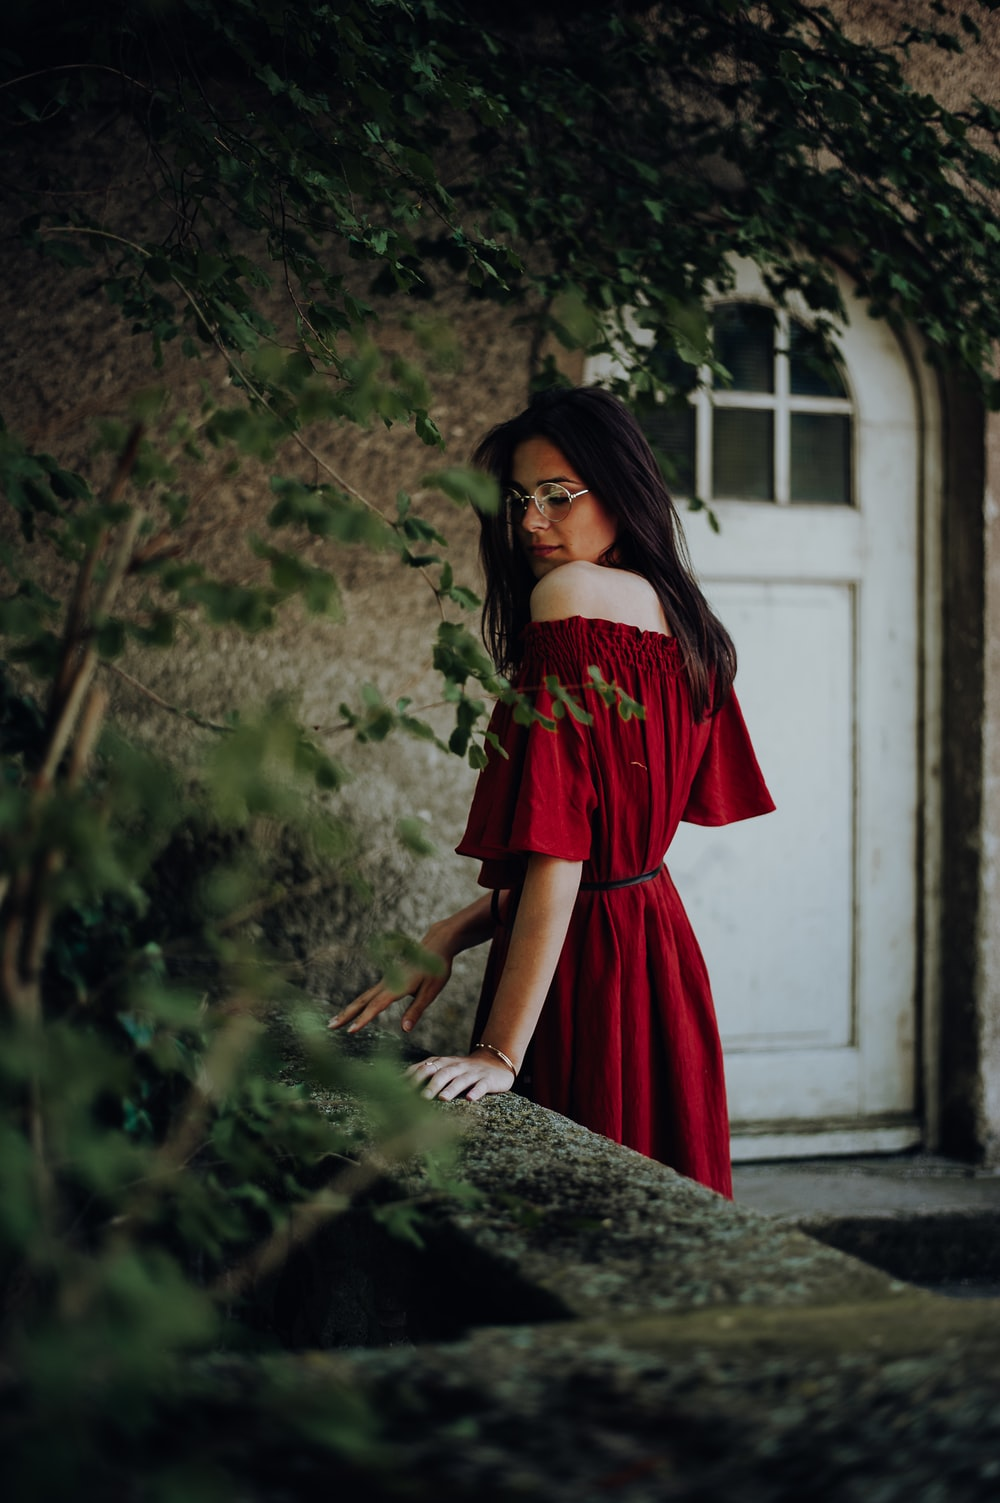 woman in red off-shoulder short-sleeved dress near brown concrete building